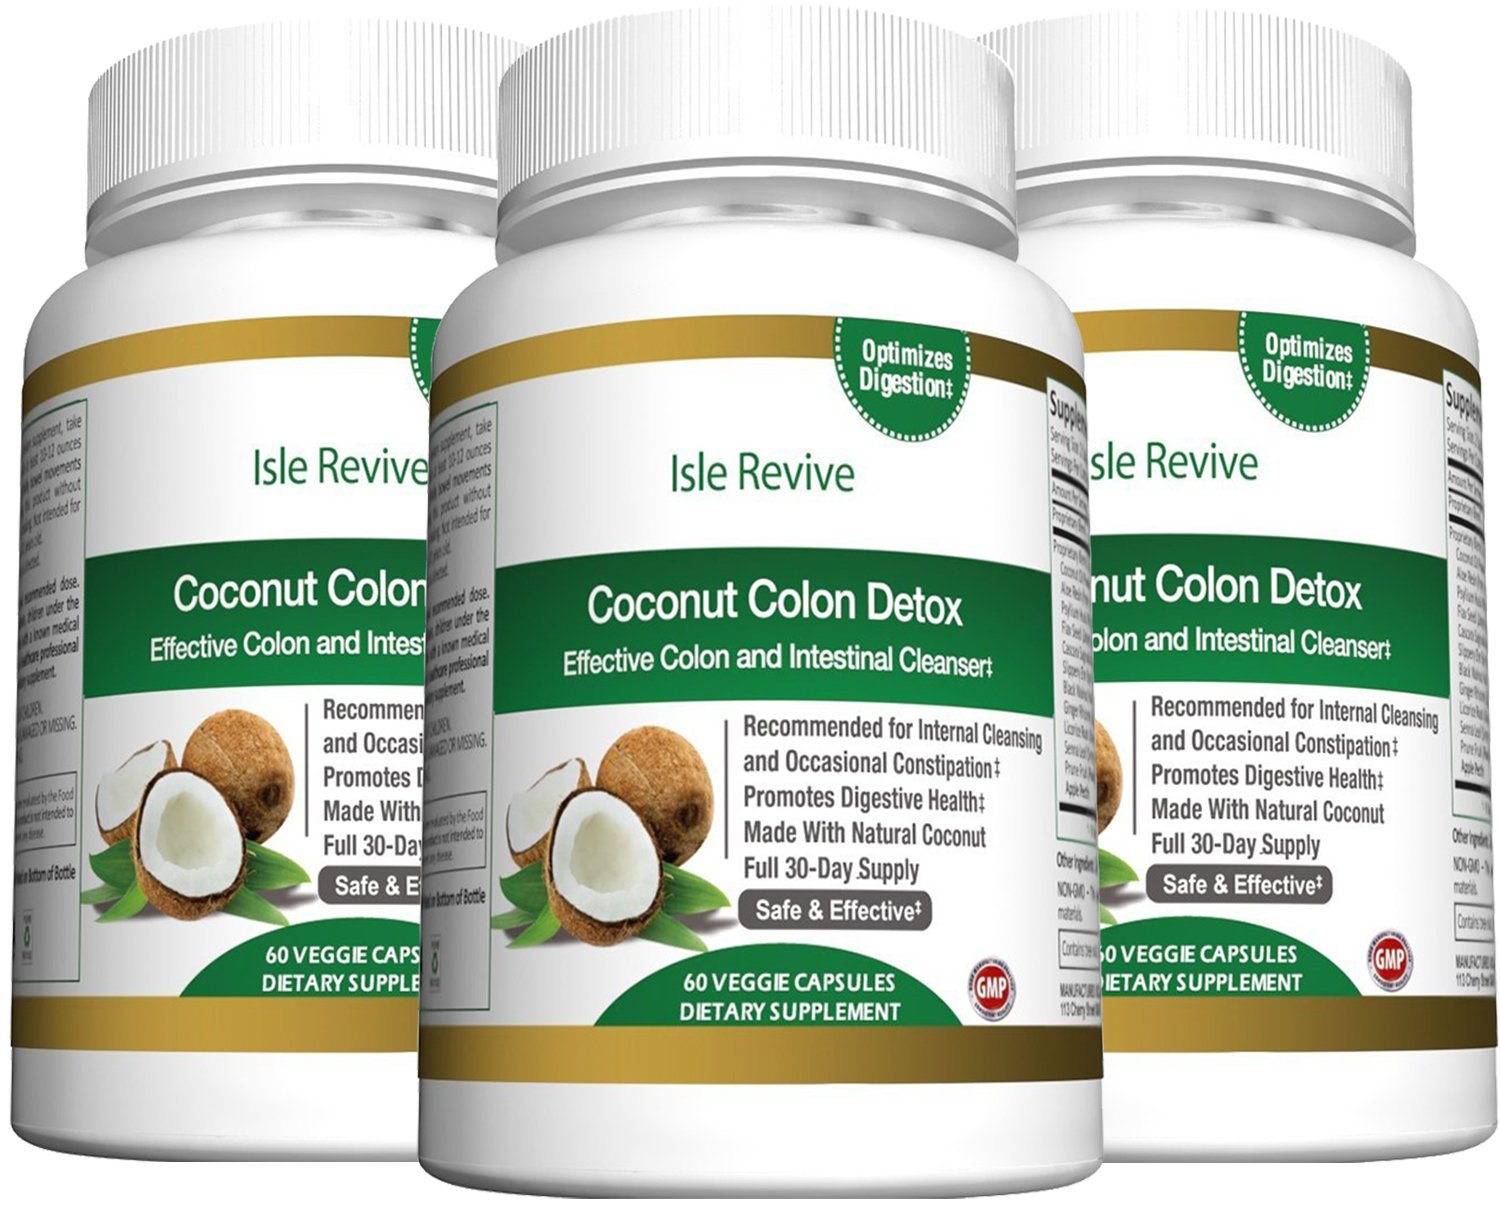 Coconut Colon Detox Cleanse for Weight Loss - with Aloe Psyllium Husk Flax Seed Licorice Root Ginger Best All Natural Healthy Digestive Laxative Constipation Cleanser - 3 Bottles 60 Capsules